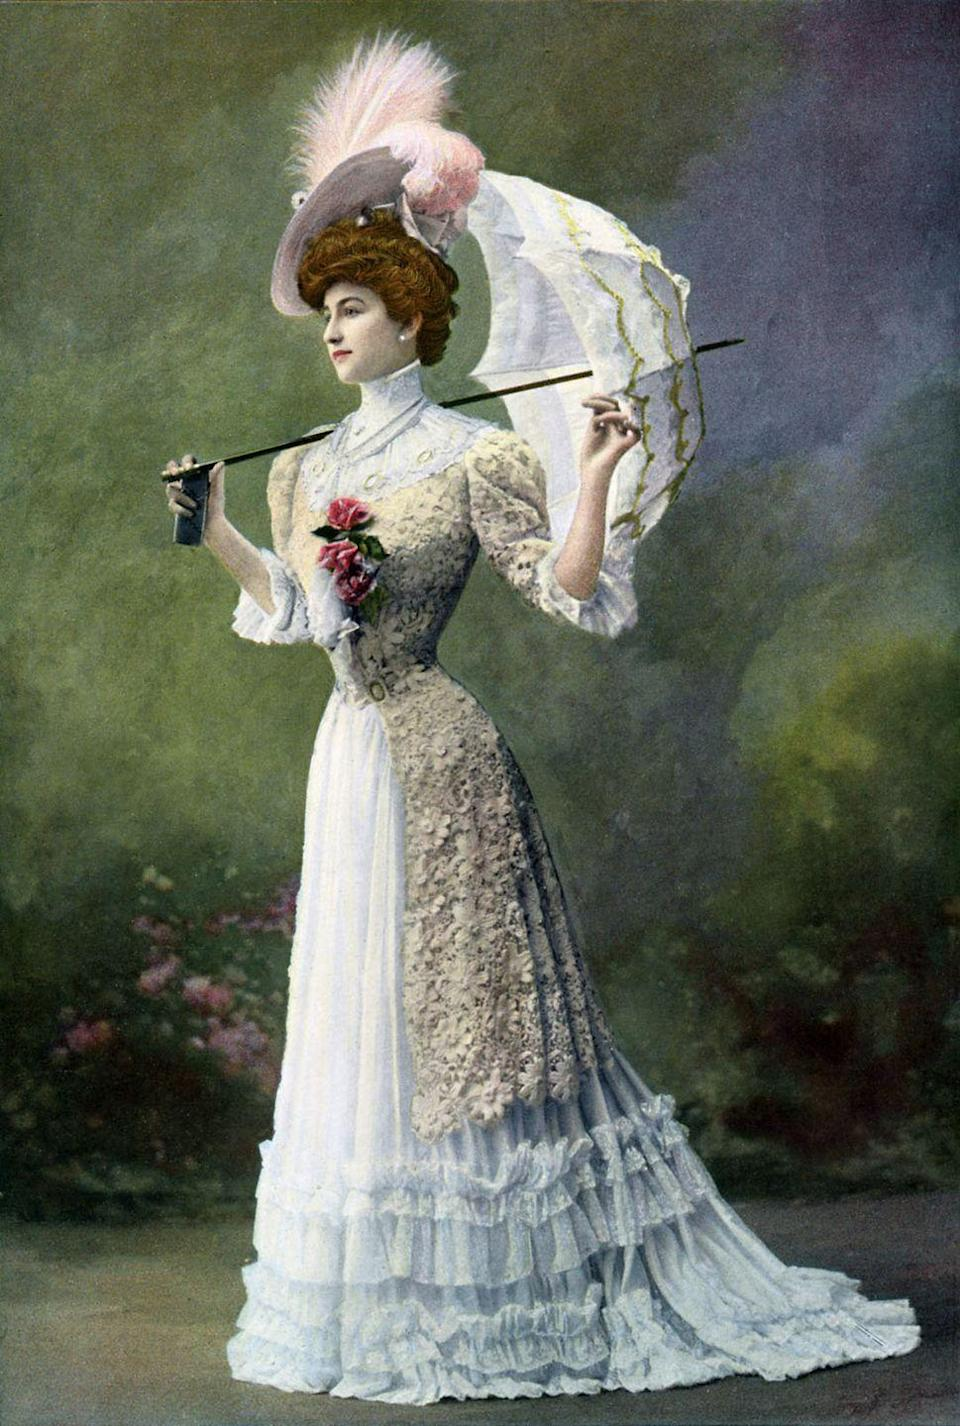 <p>At the tail end of the Victorian era, dresses became more playful with lace, ruffles, and feather details. But high necks were still key. </p>